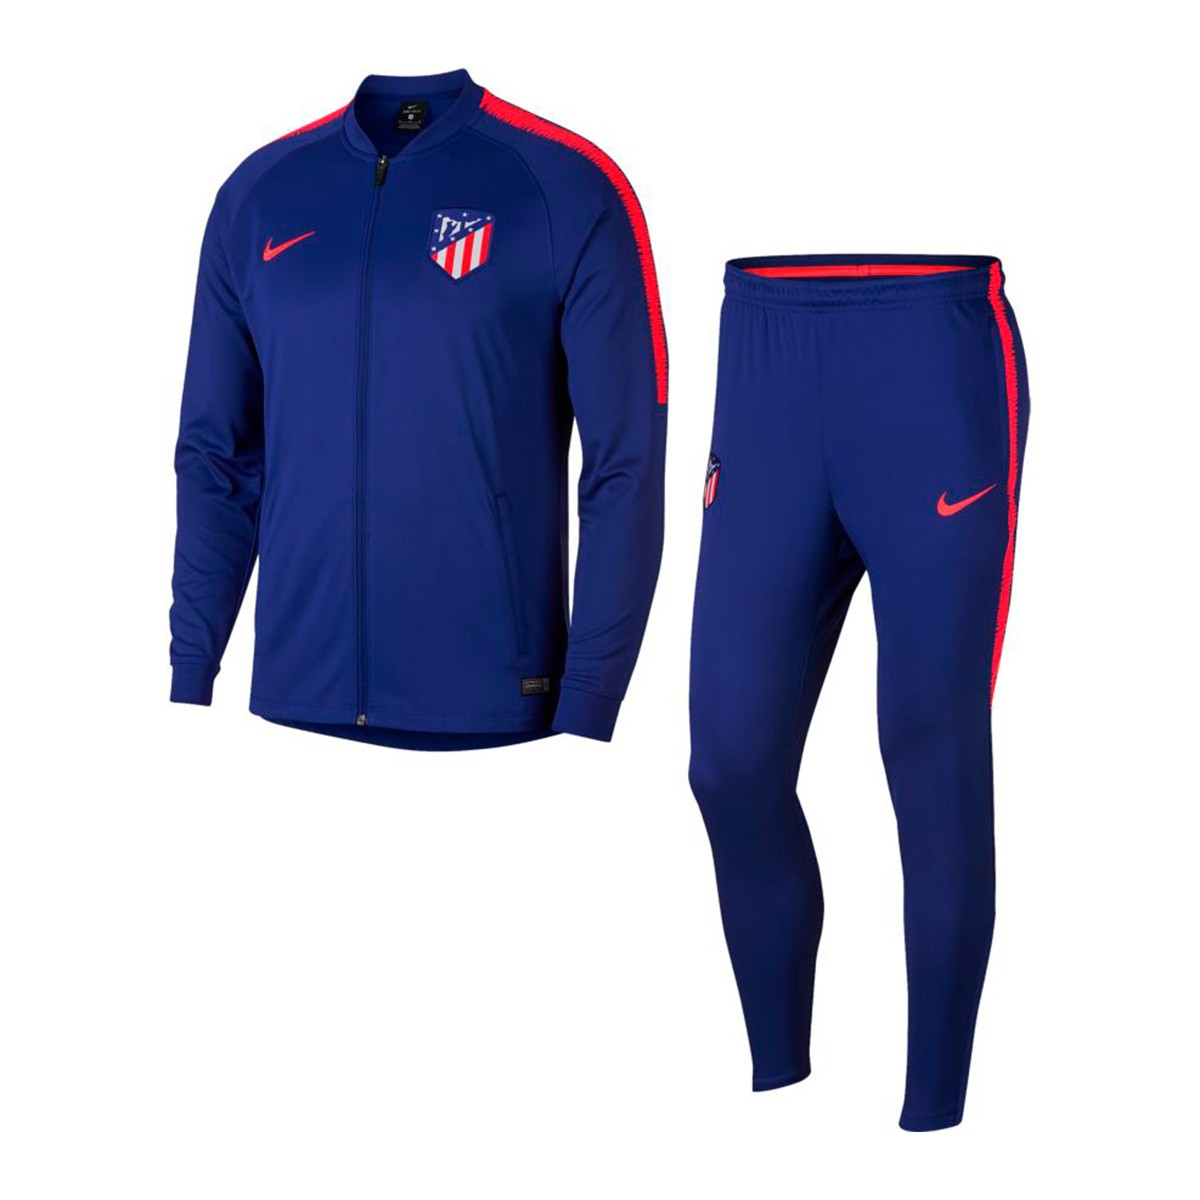 surv tement nike atl tico de madrid squad 2018 2019 deep royal blue bright crimson boutique de. Black Bedroom Furniture Sets. Home Design Ideas